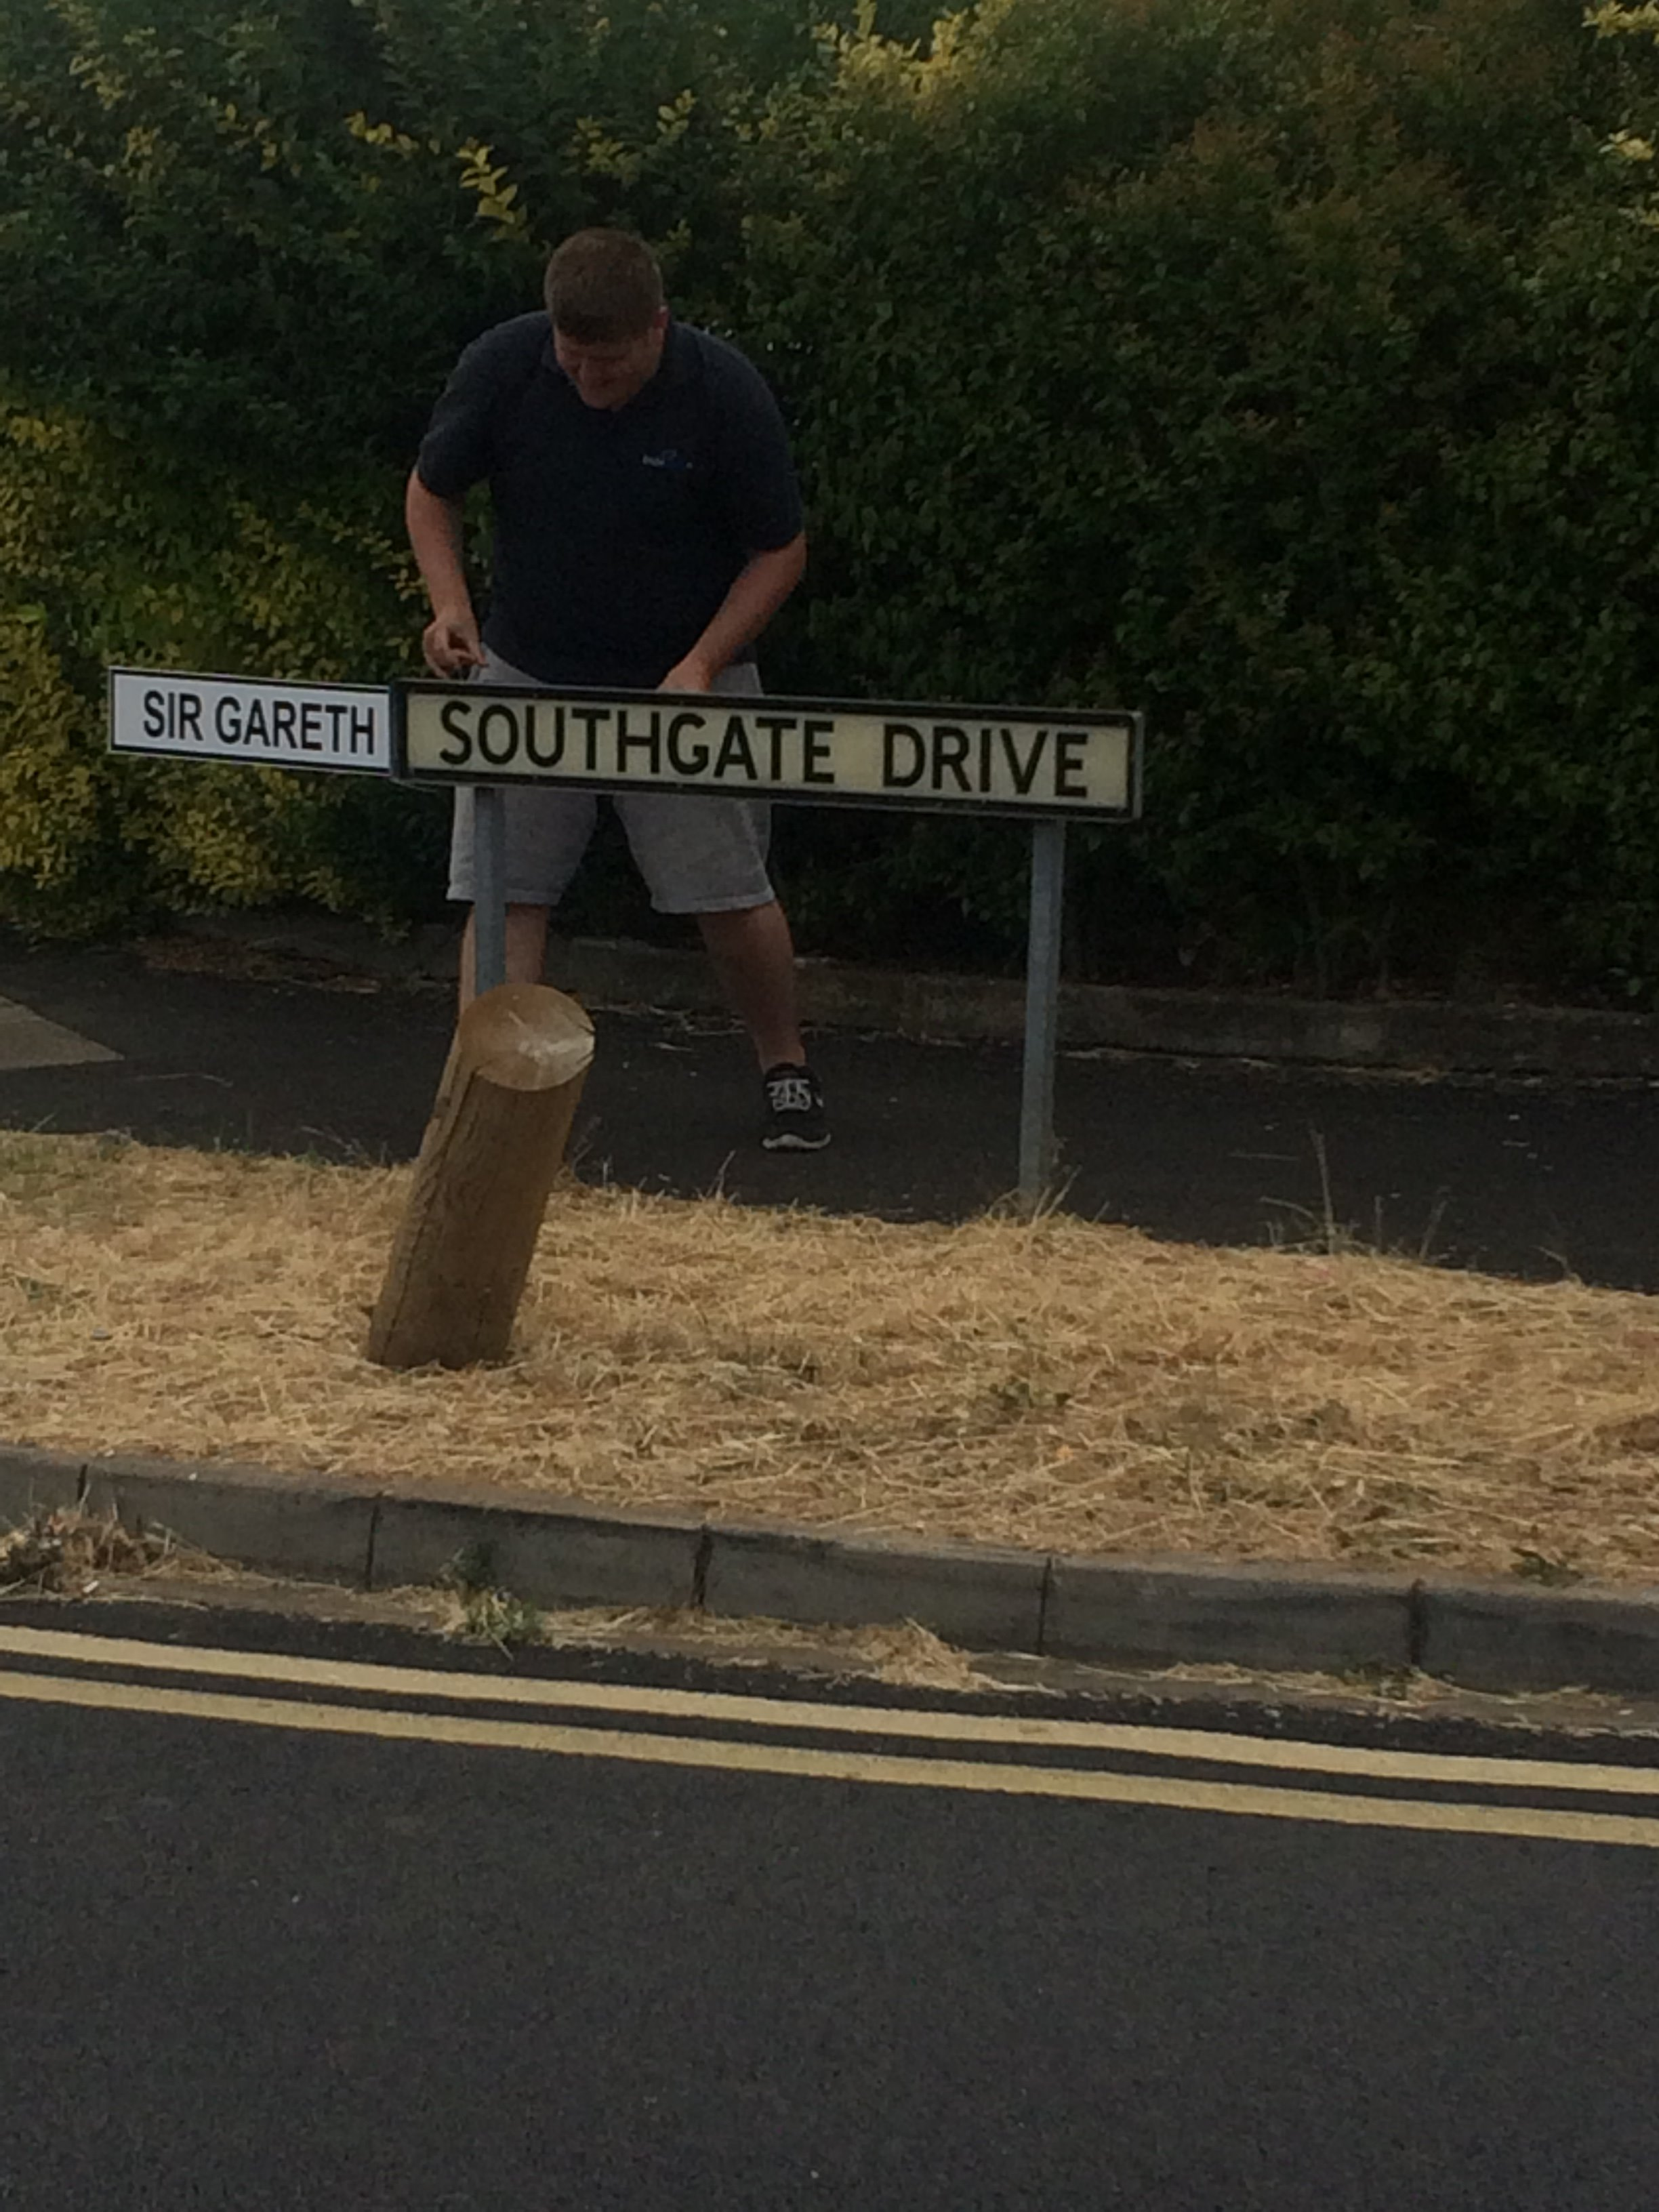 A sign for Southgate Drive in Kettering is given a new look